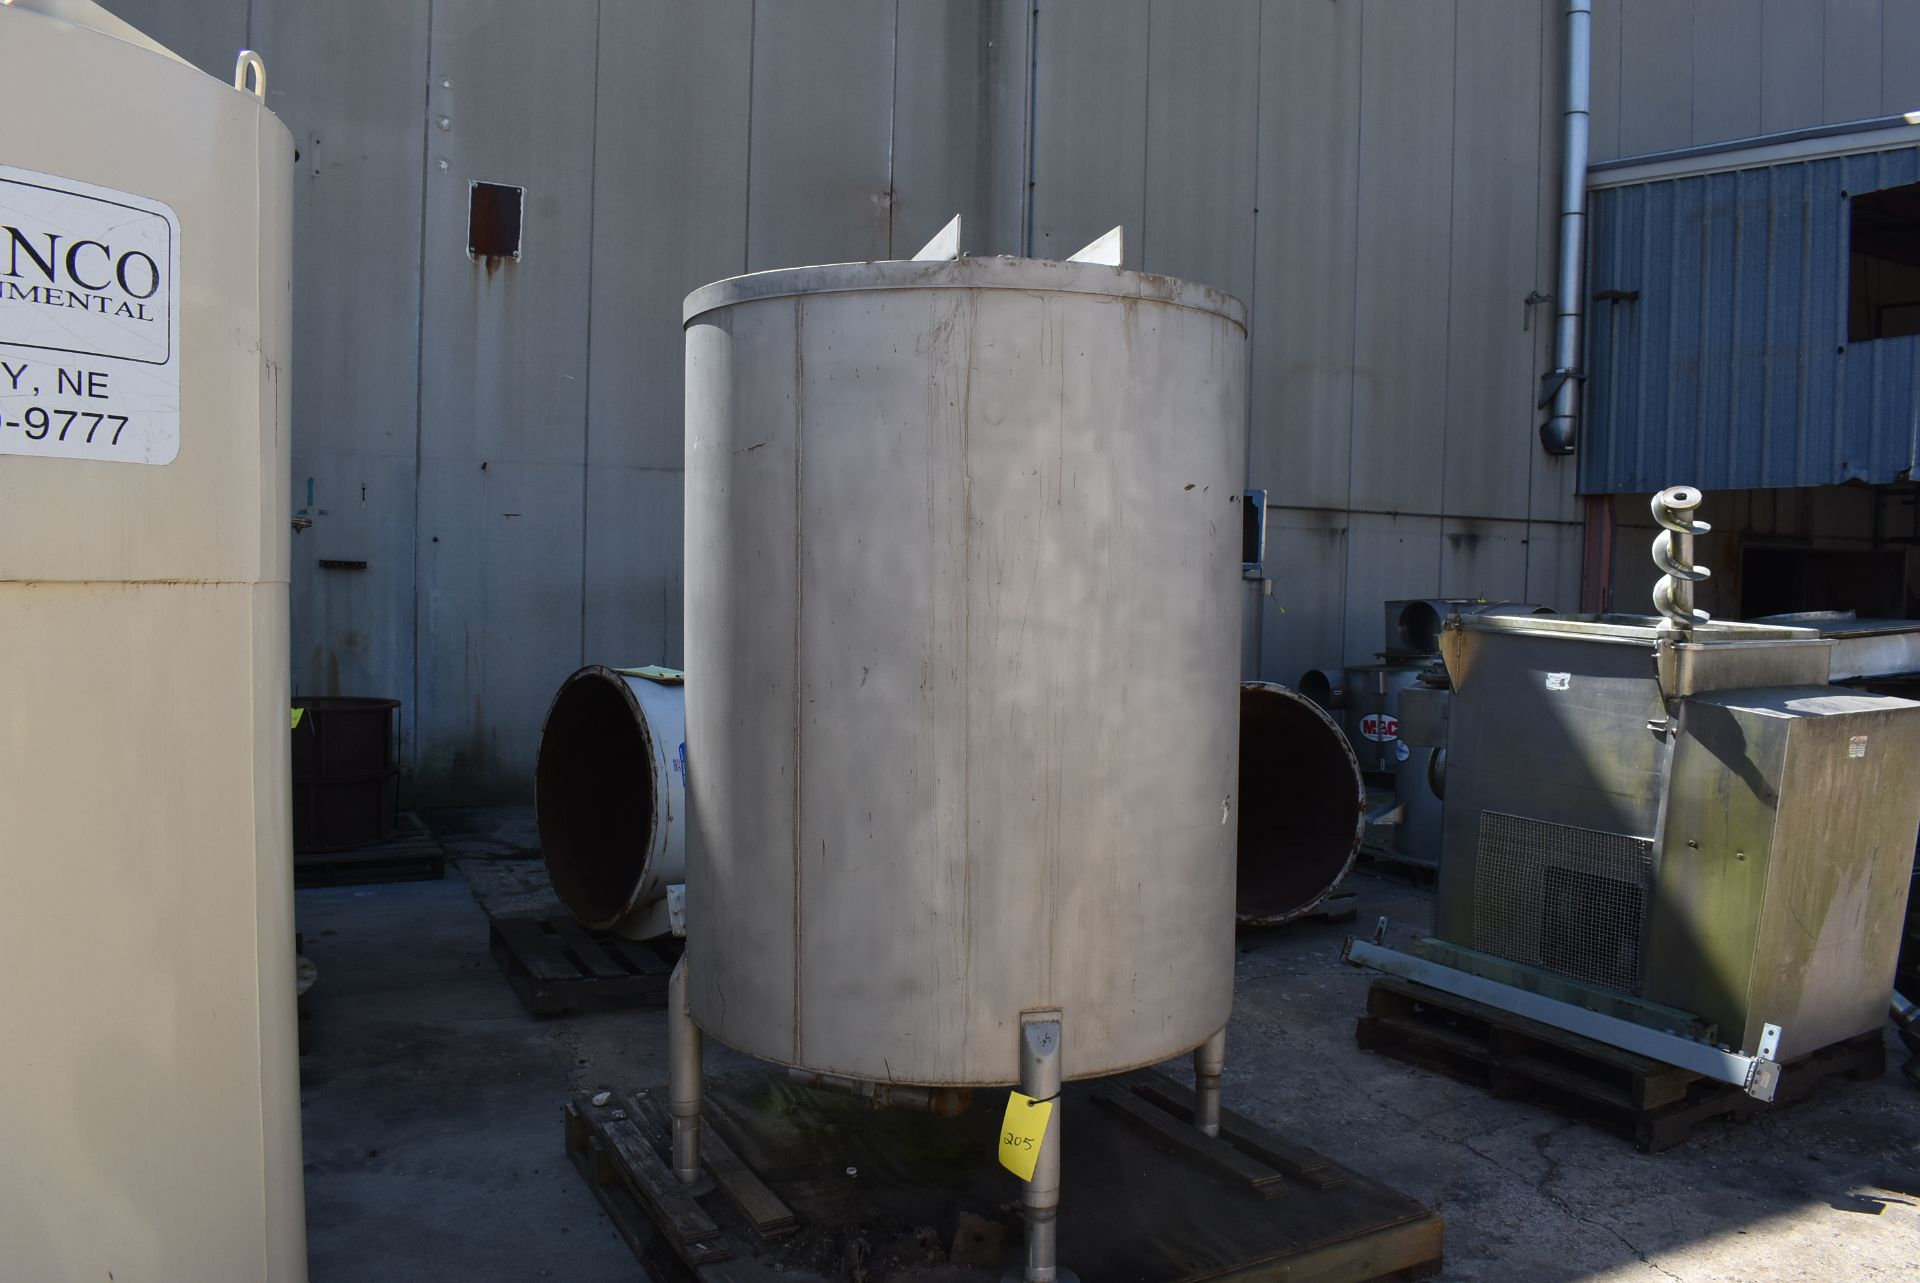 """Stainless Steel Tank, Rated 400 Gallons, 48"""" Diameter x 60"""" - Image 5 of 5"""